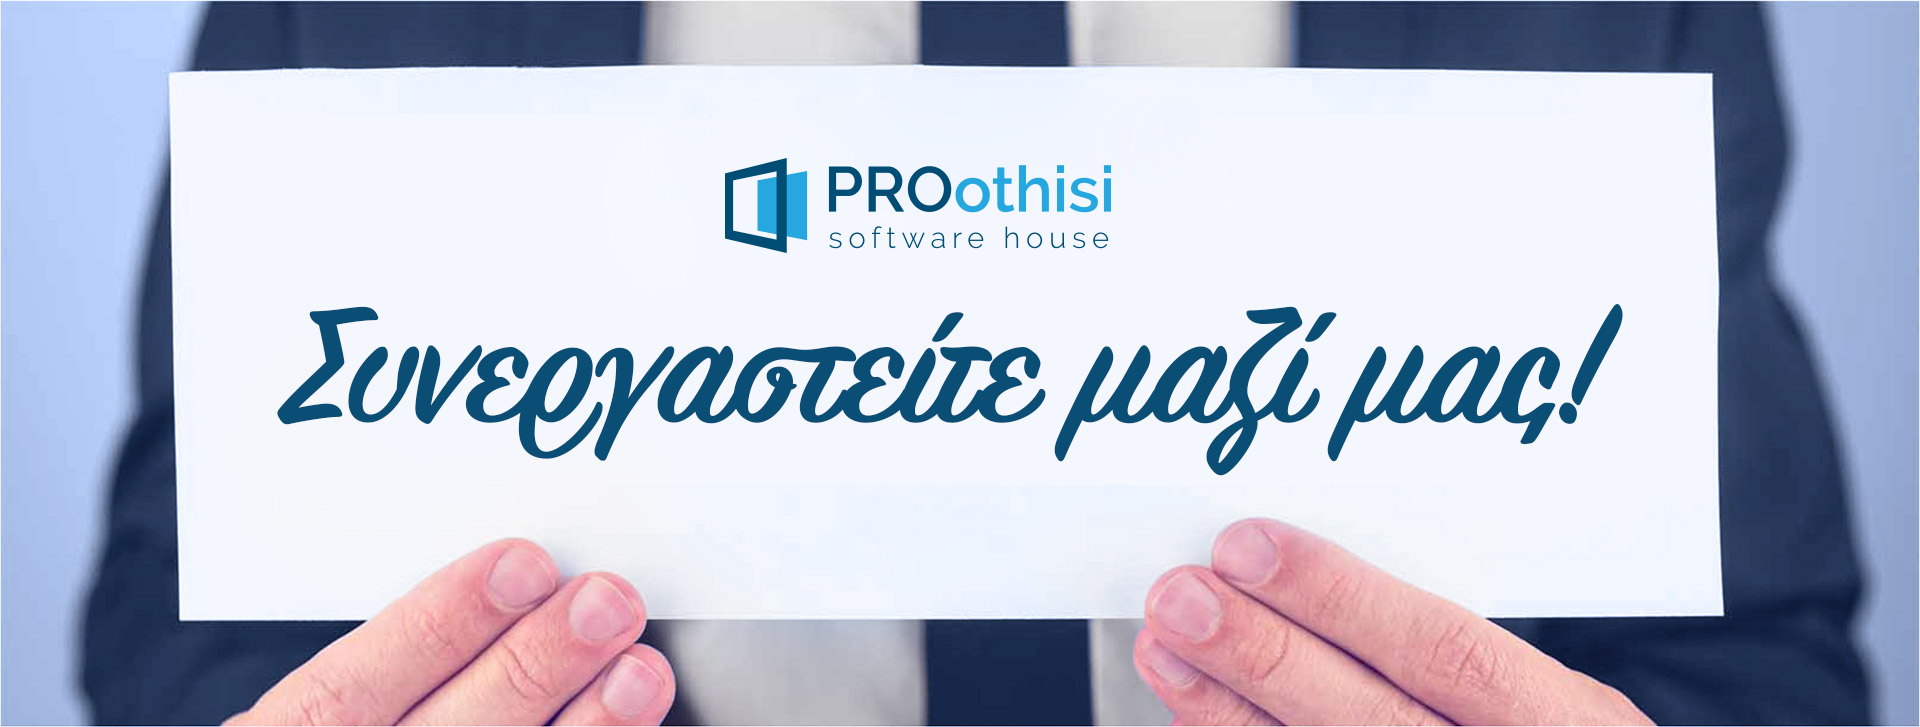 join-proothisi-team